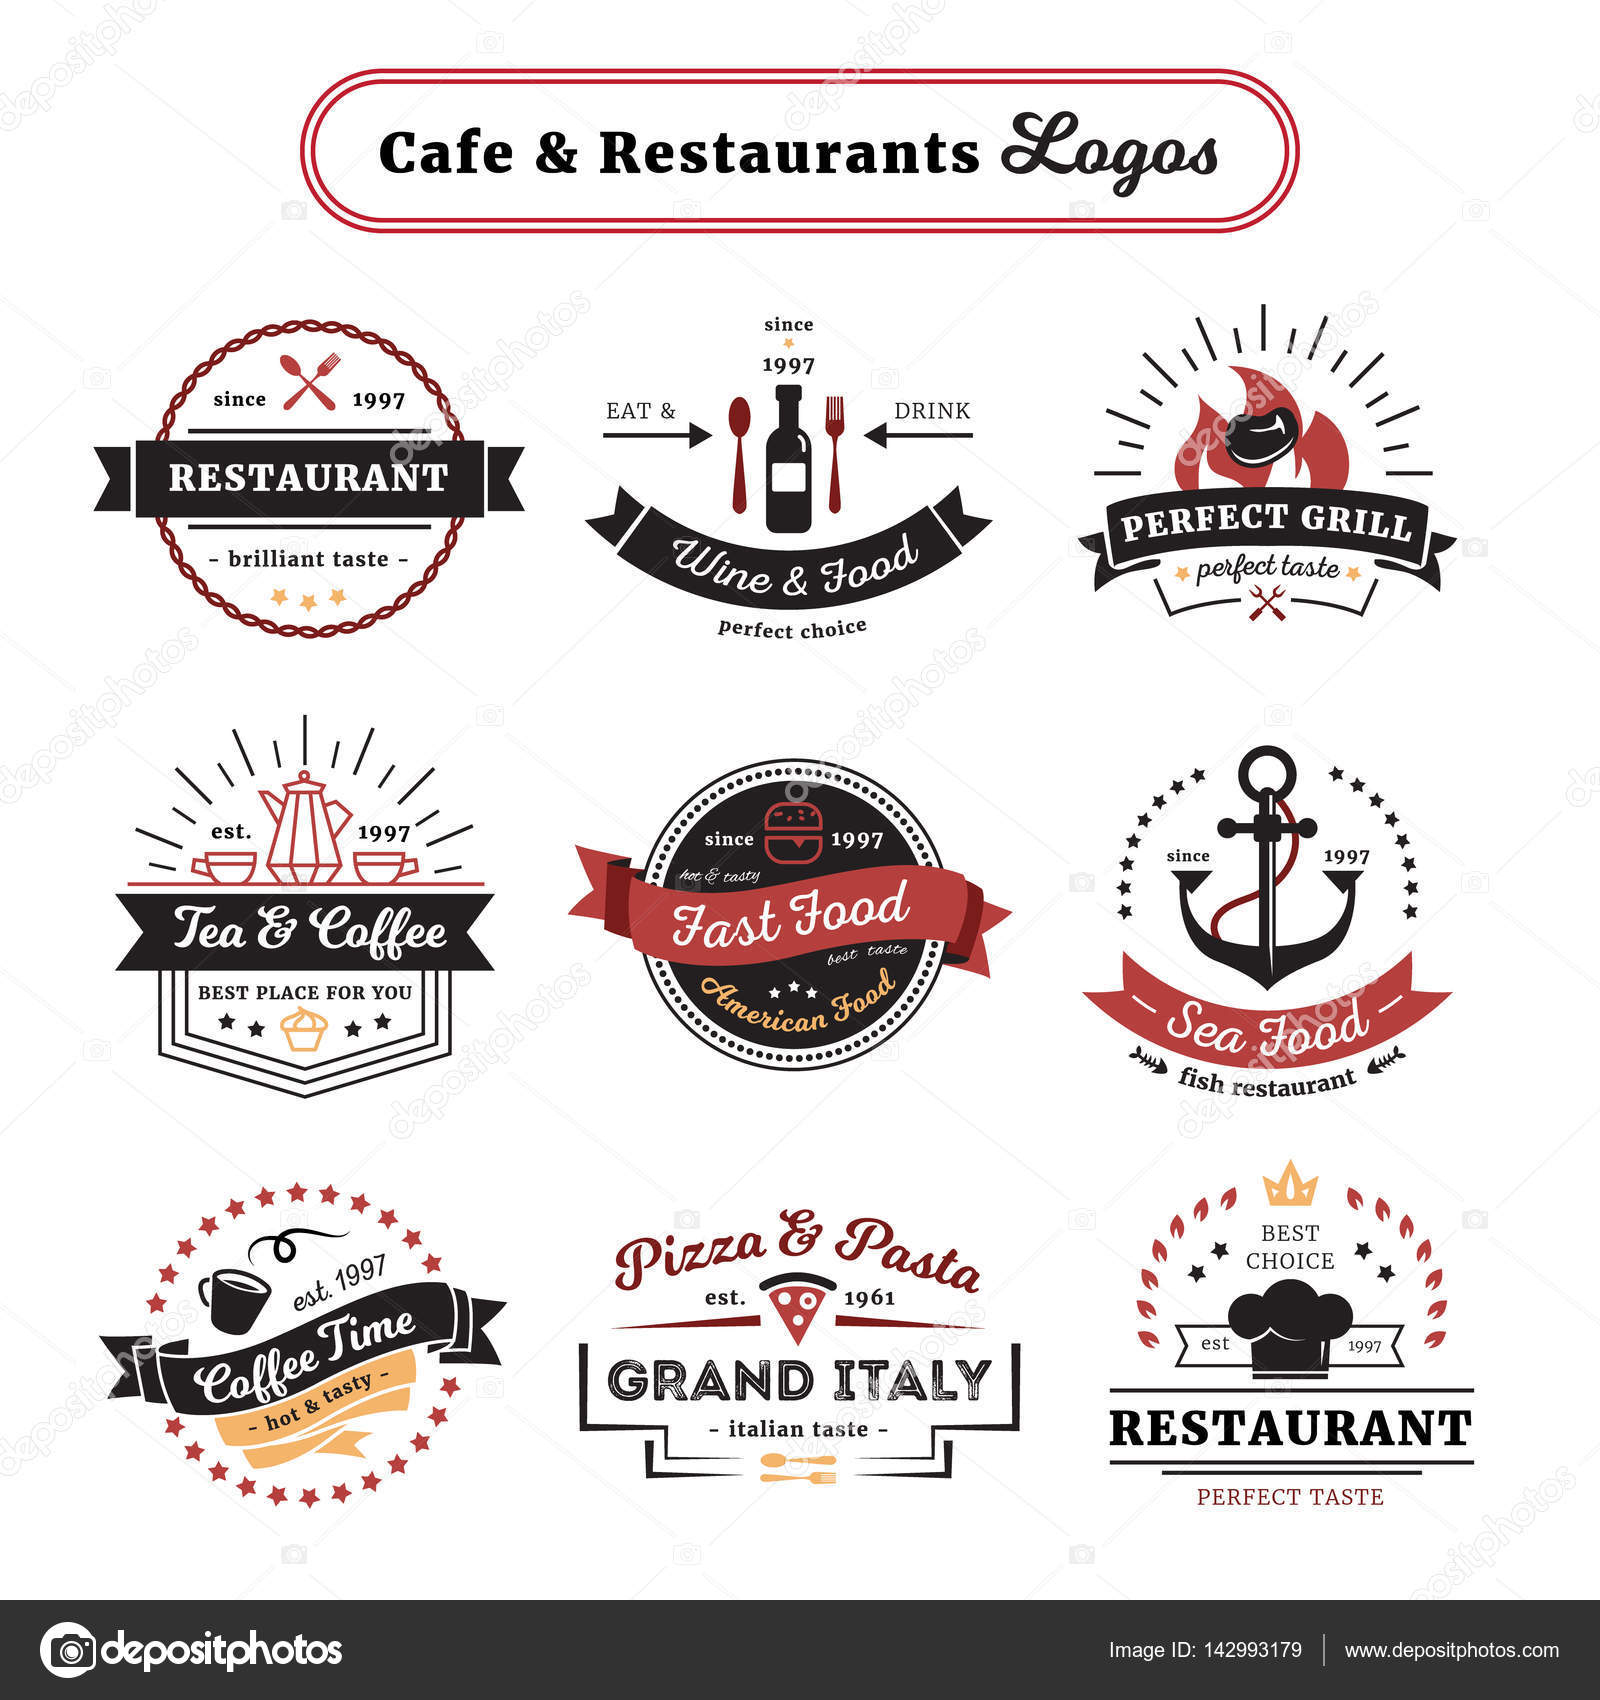 Cafe And Restaurant Logos Vintage Design Stock Vector C Macrovector 142993179